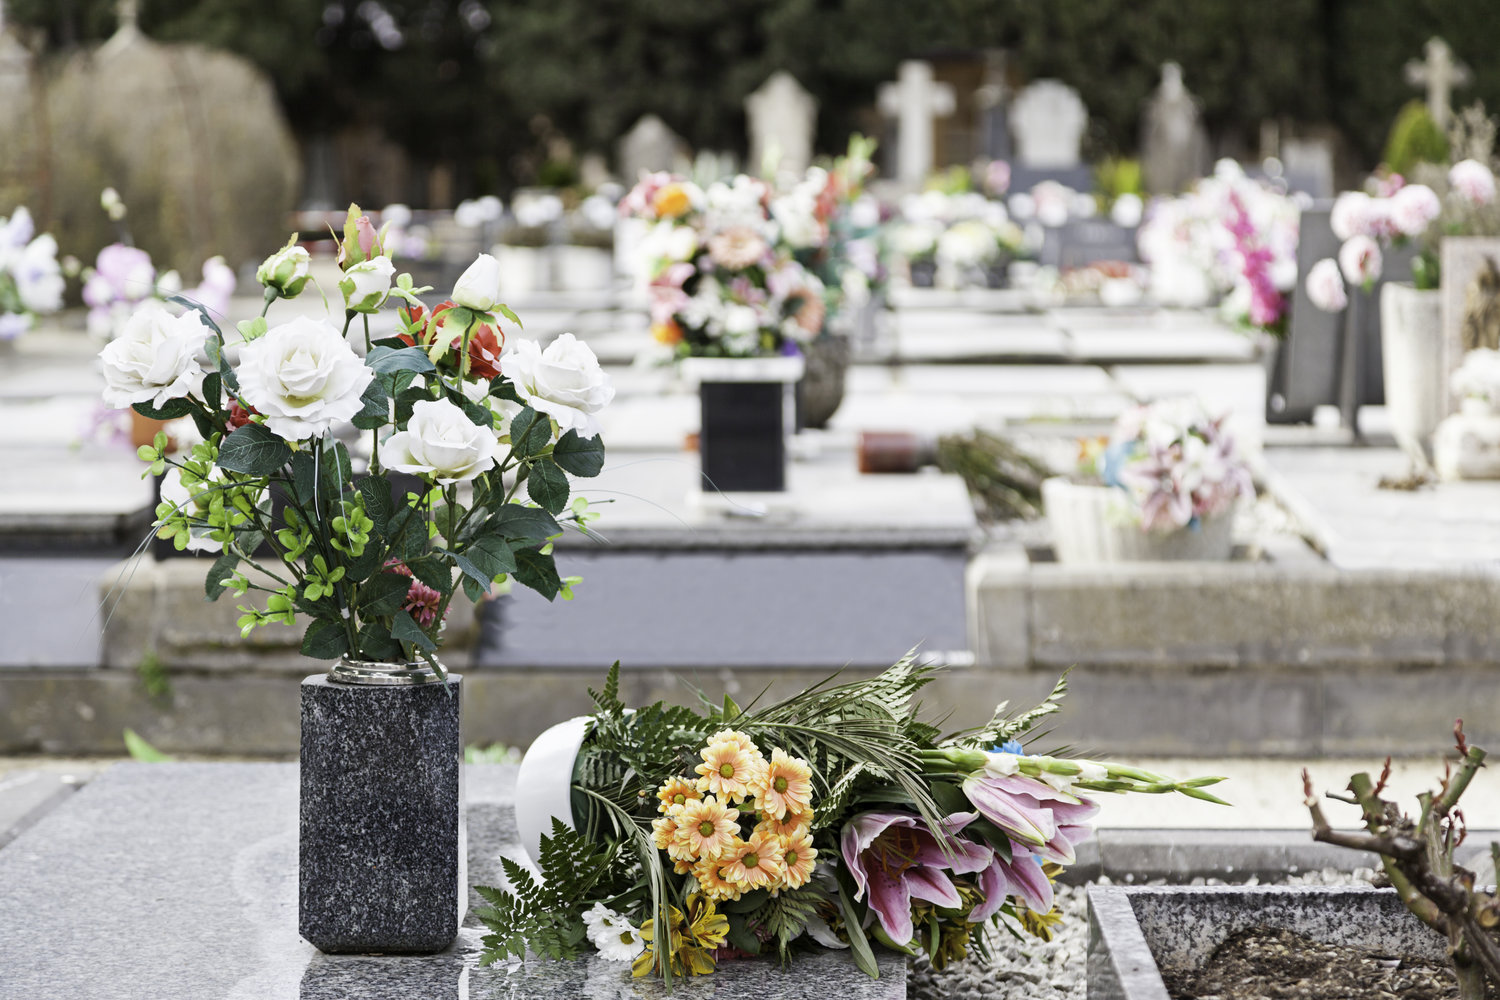 Burial cremation sonoma funeral home izmirmasajfo Choice Image